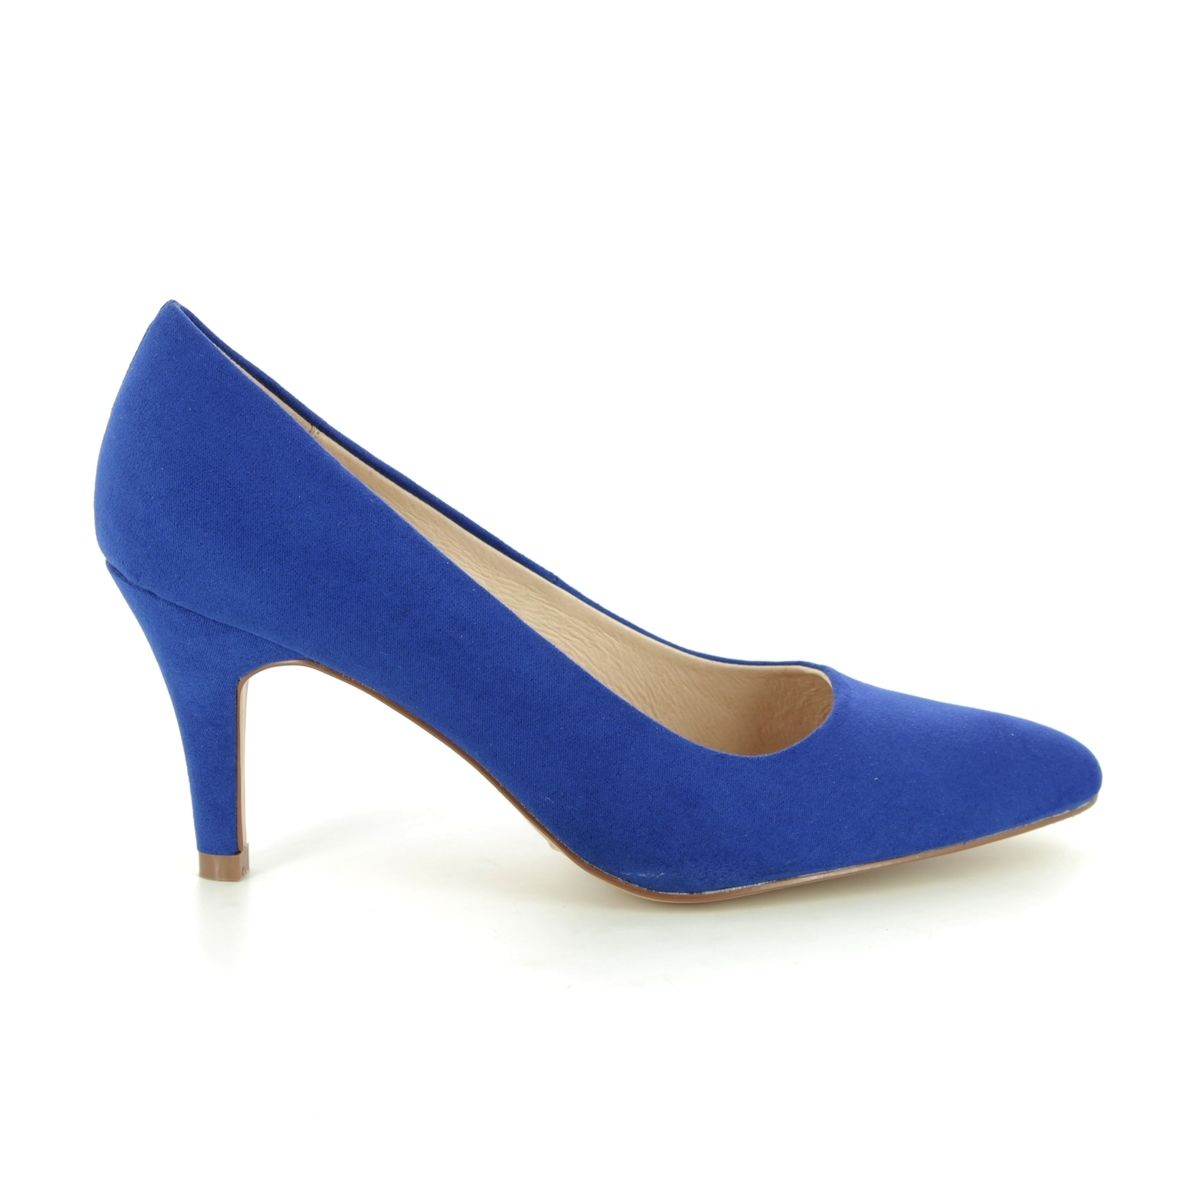 60f9a5d111d4 Lotus High-heeled Shoes - Blue - ULS055 72 HOLLY